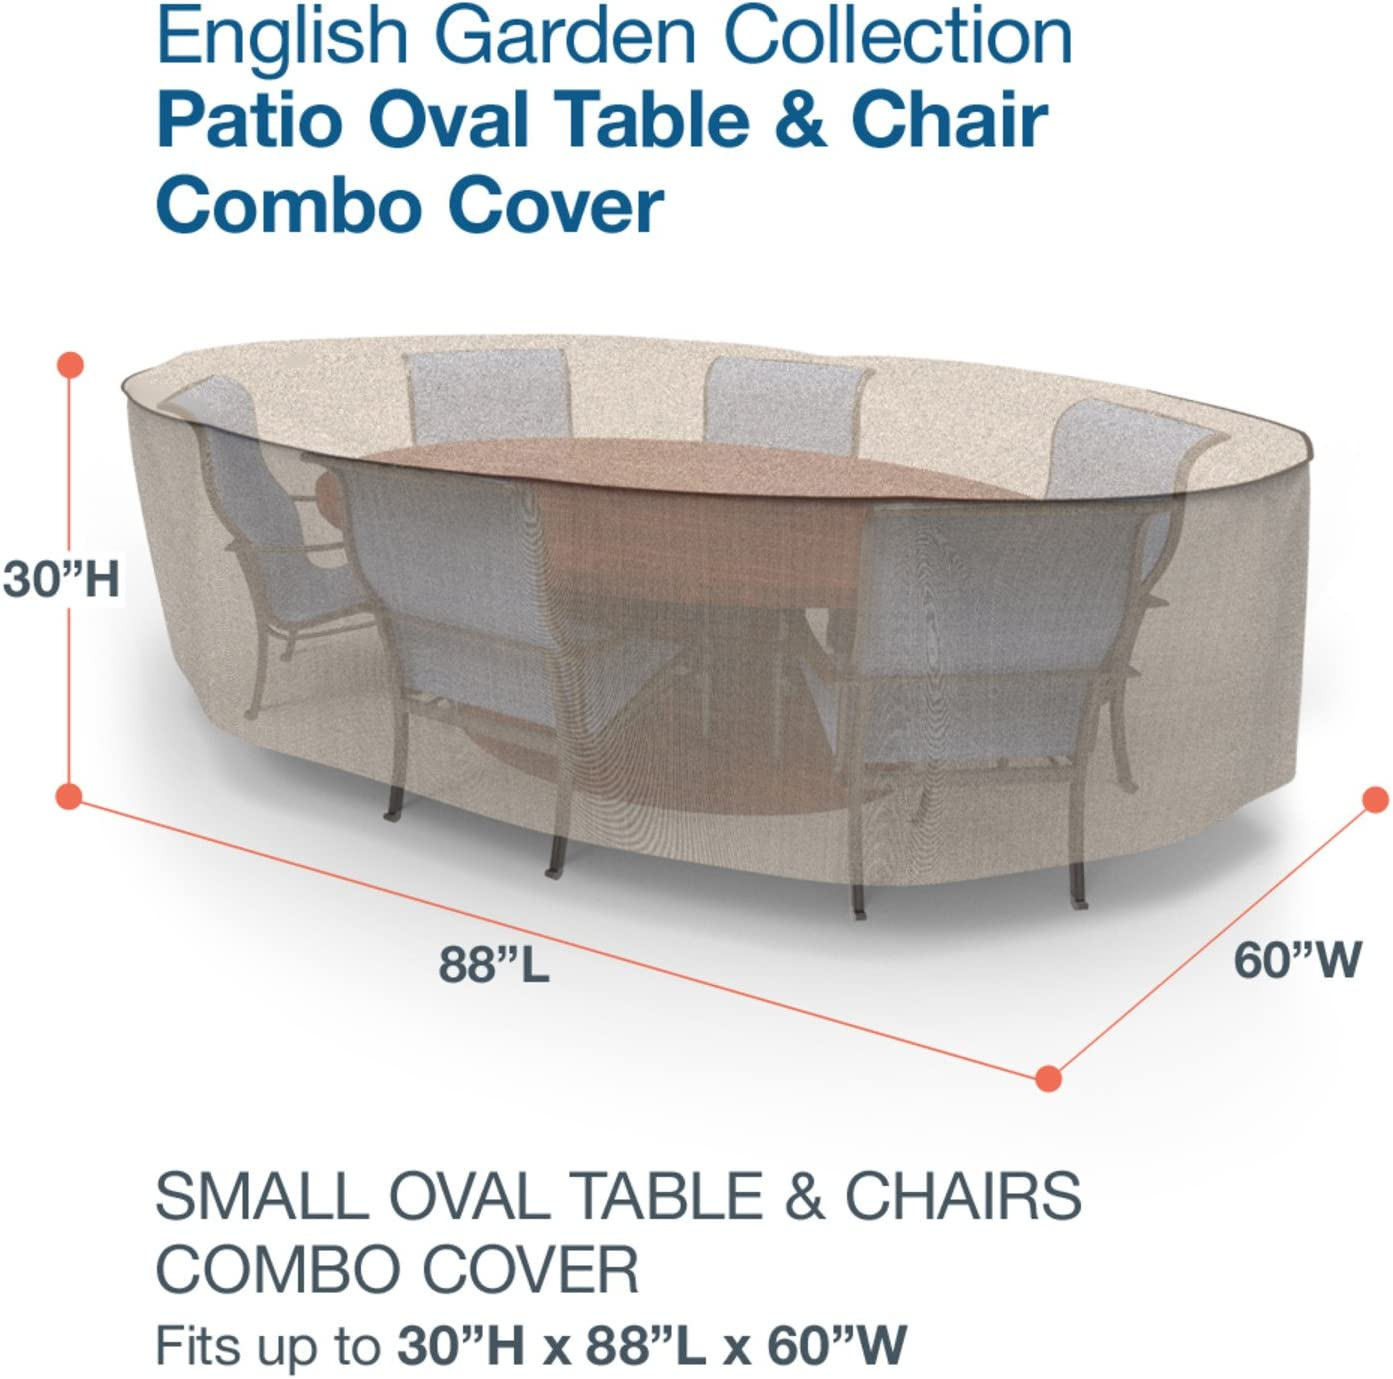 Budge P5A11PM1 Oval Table and Chairs Combo Heavy Duty and Waterproof Patio Furniture Covers Two-Tone Tan Small